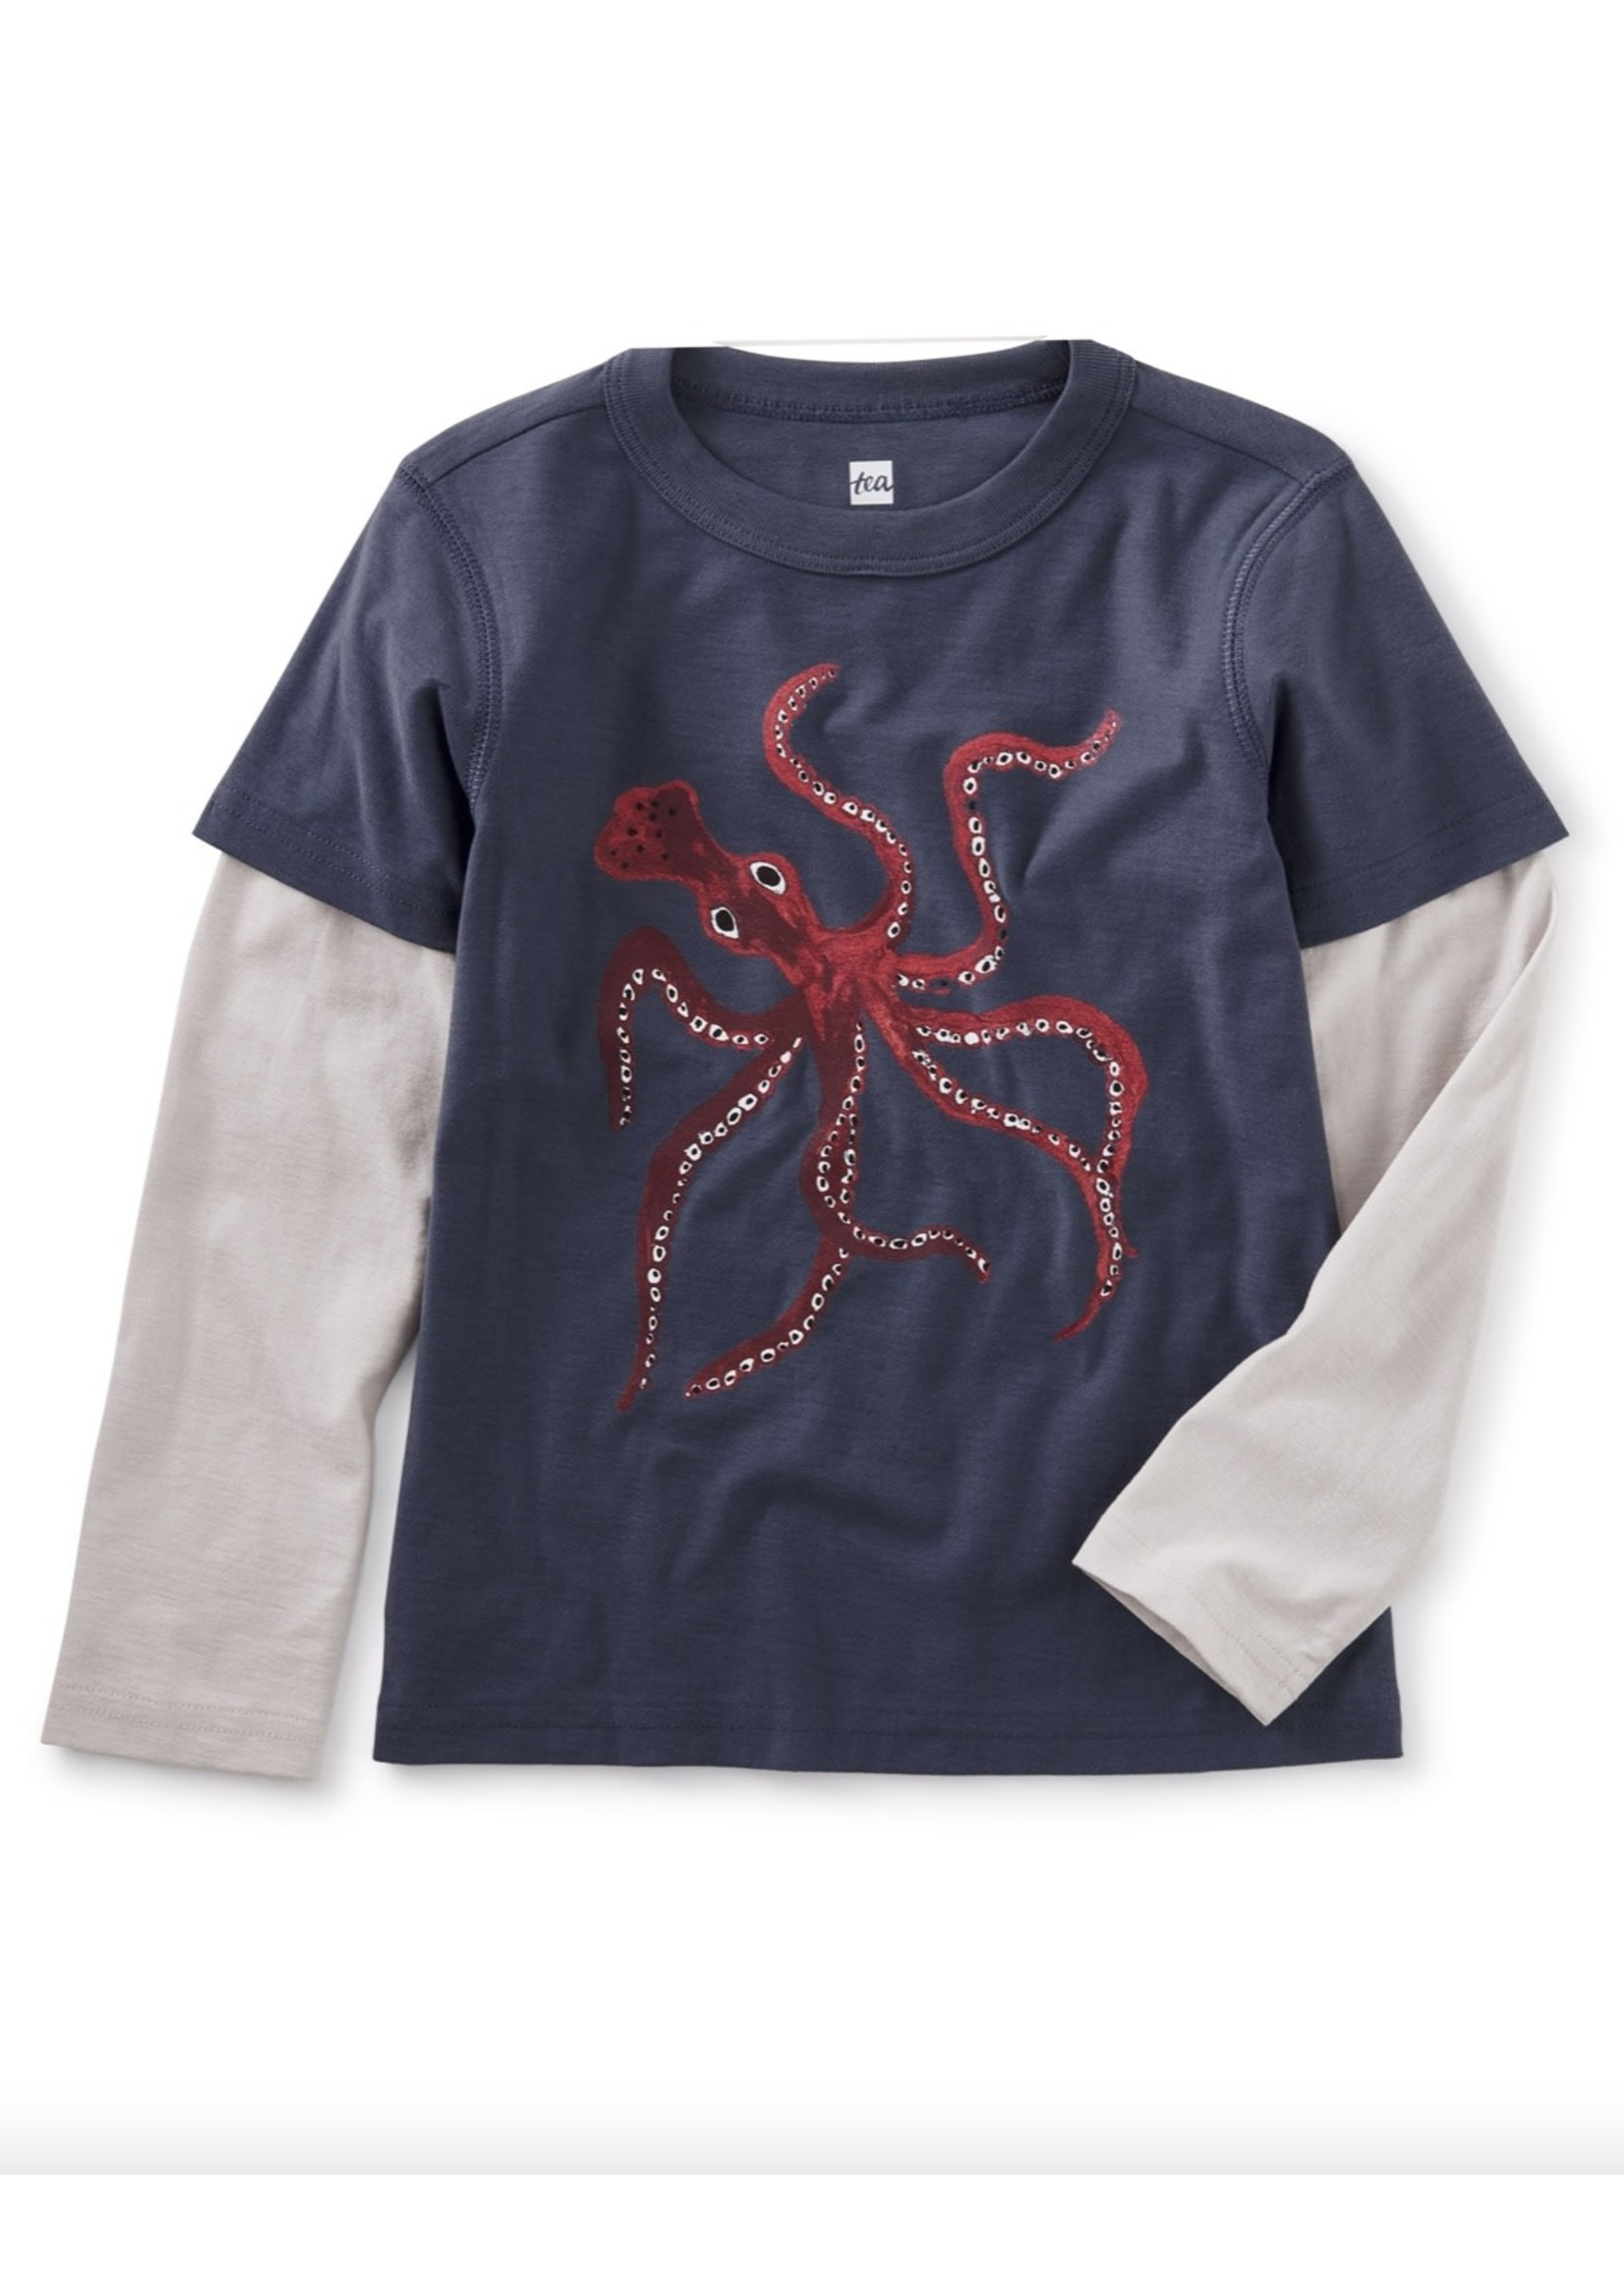 Tea Collection Awesome Octo Graphic Long Sleeve Tee in Triumph